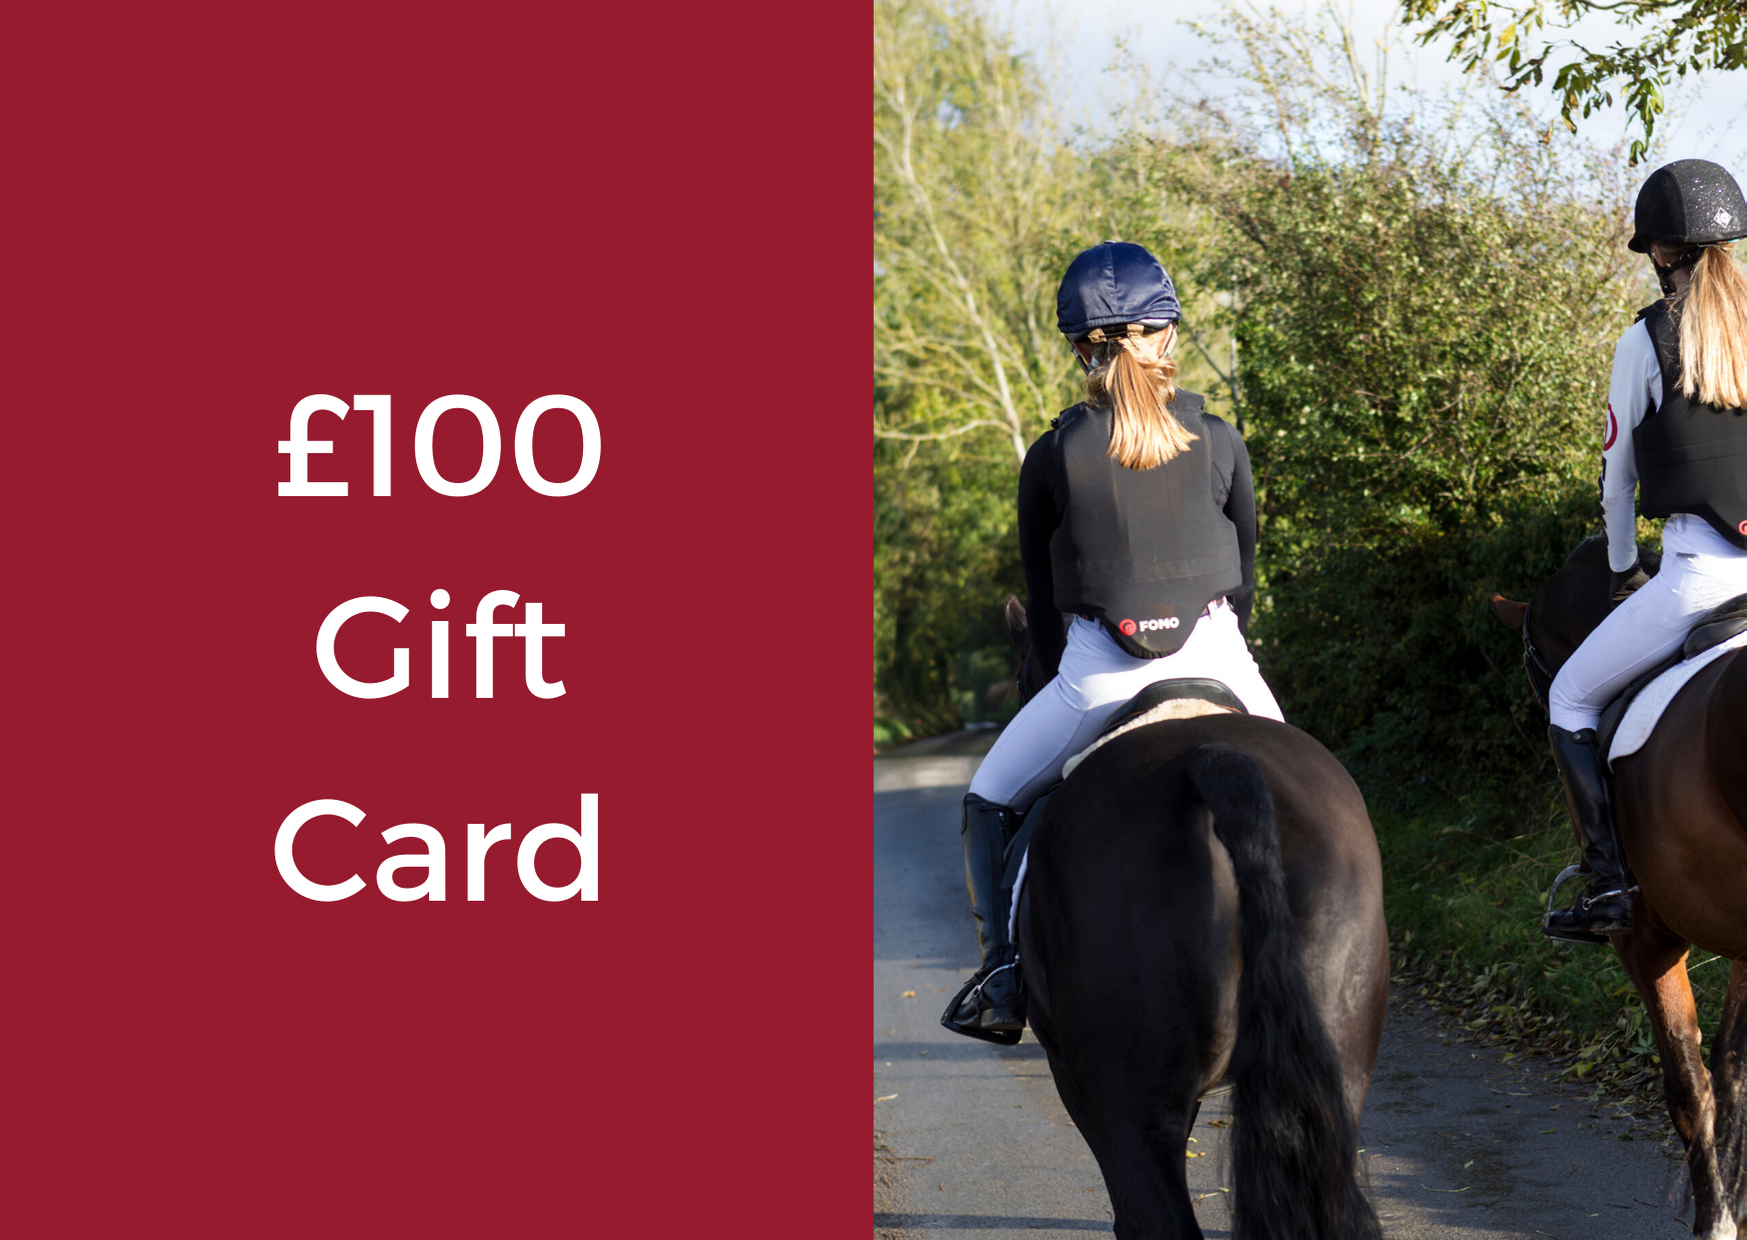 https://www.fomoprotection.com/wp-content/uploads/2019/11/£100-Gift-Card.png